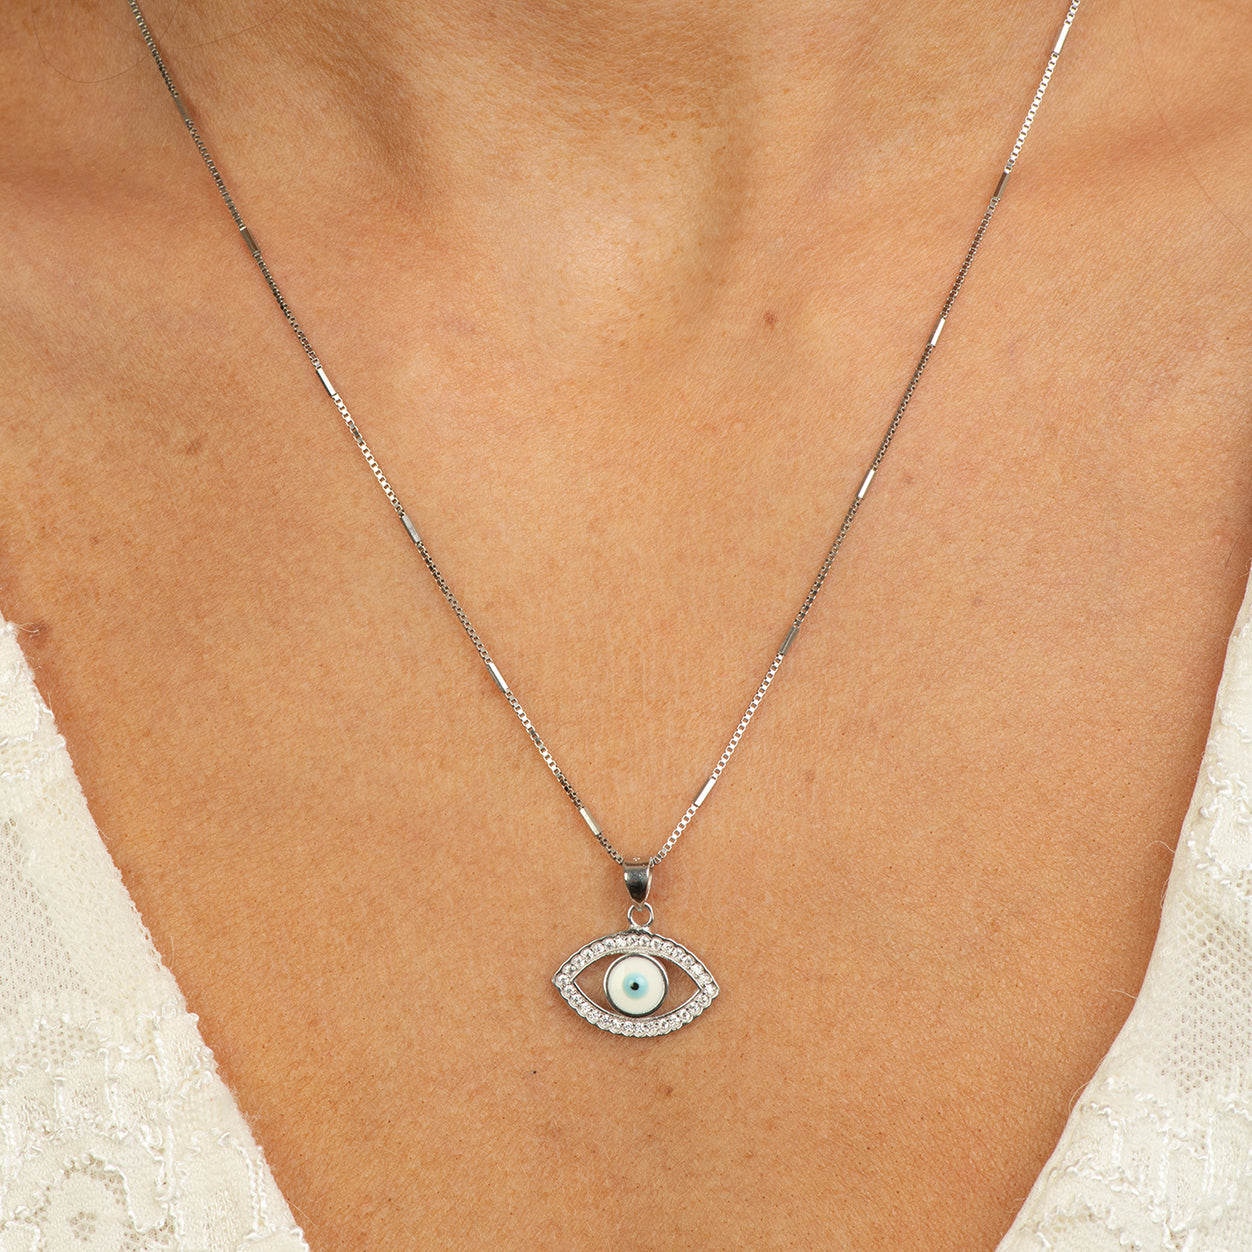 Necklace with protective eye